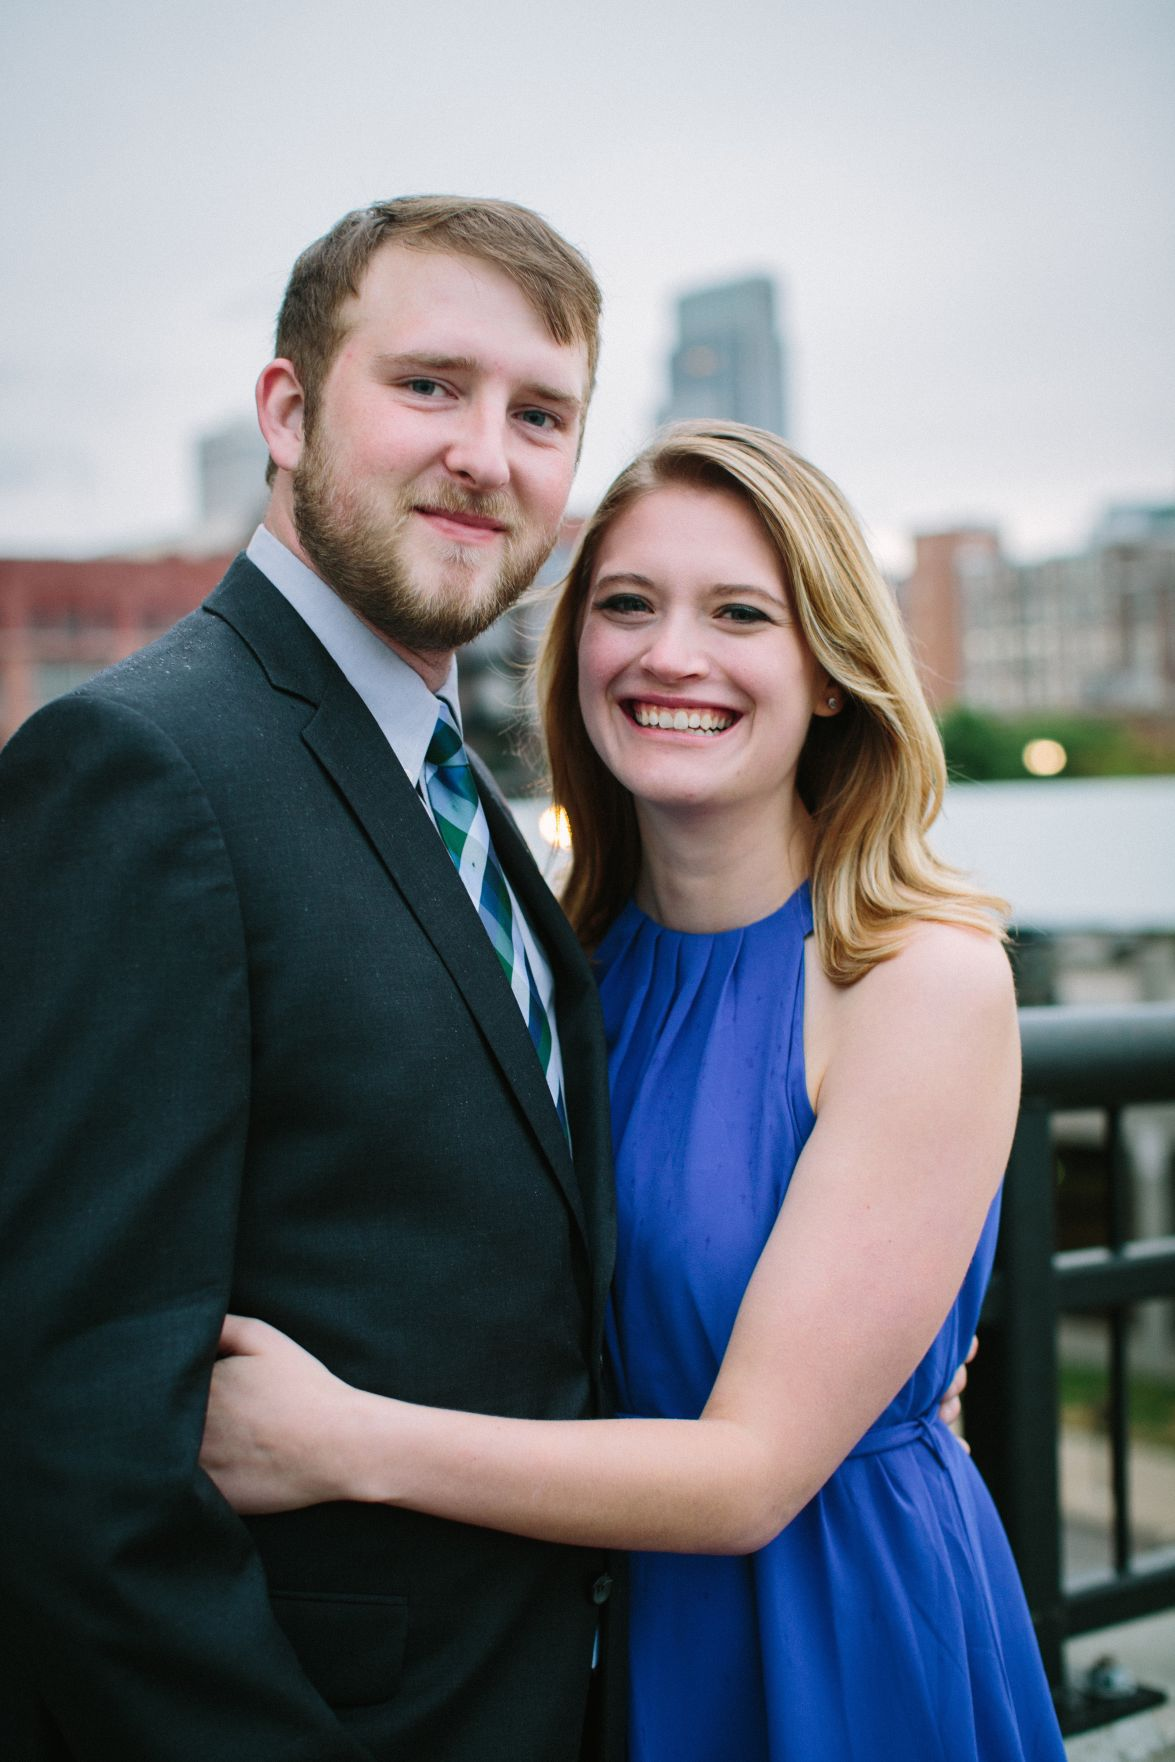 Thomas Fitzpatrick III and Jessica Dyk